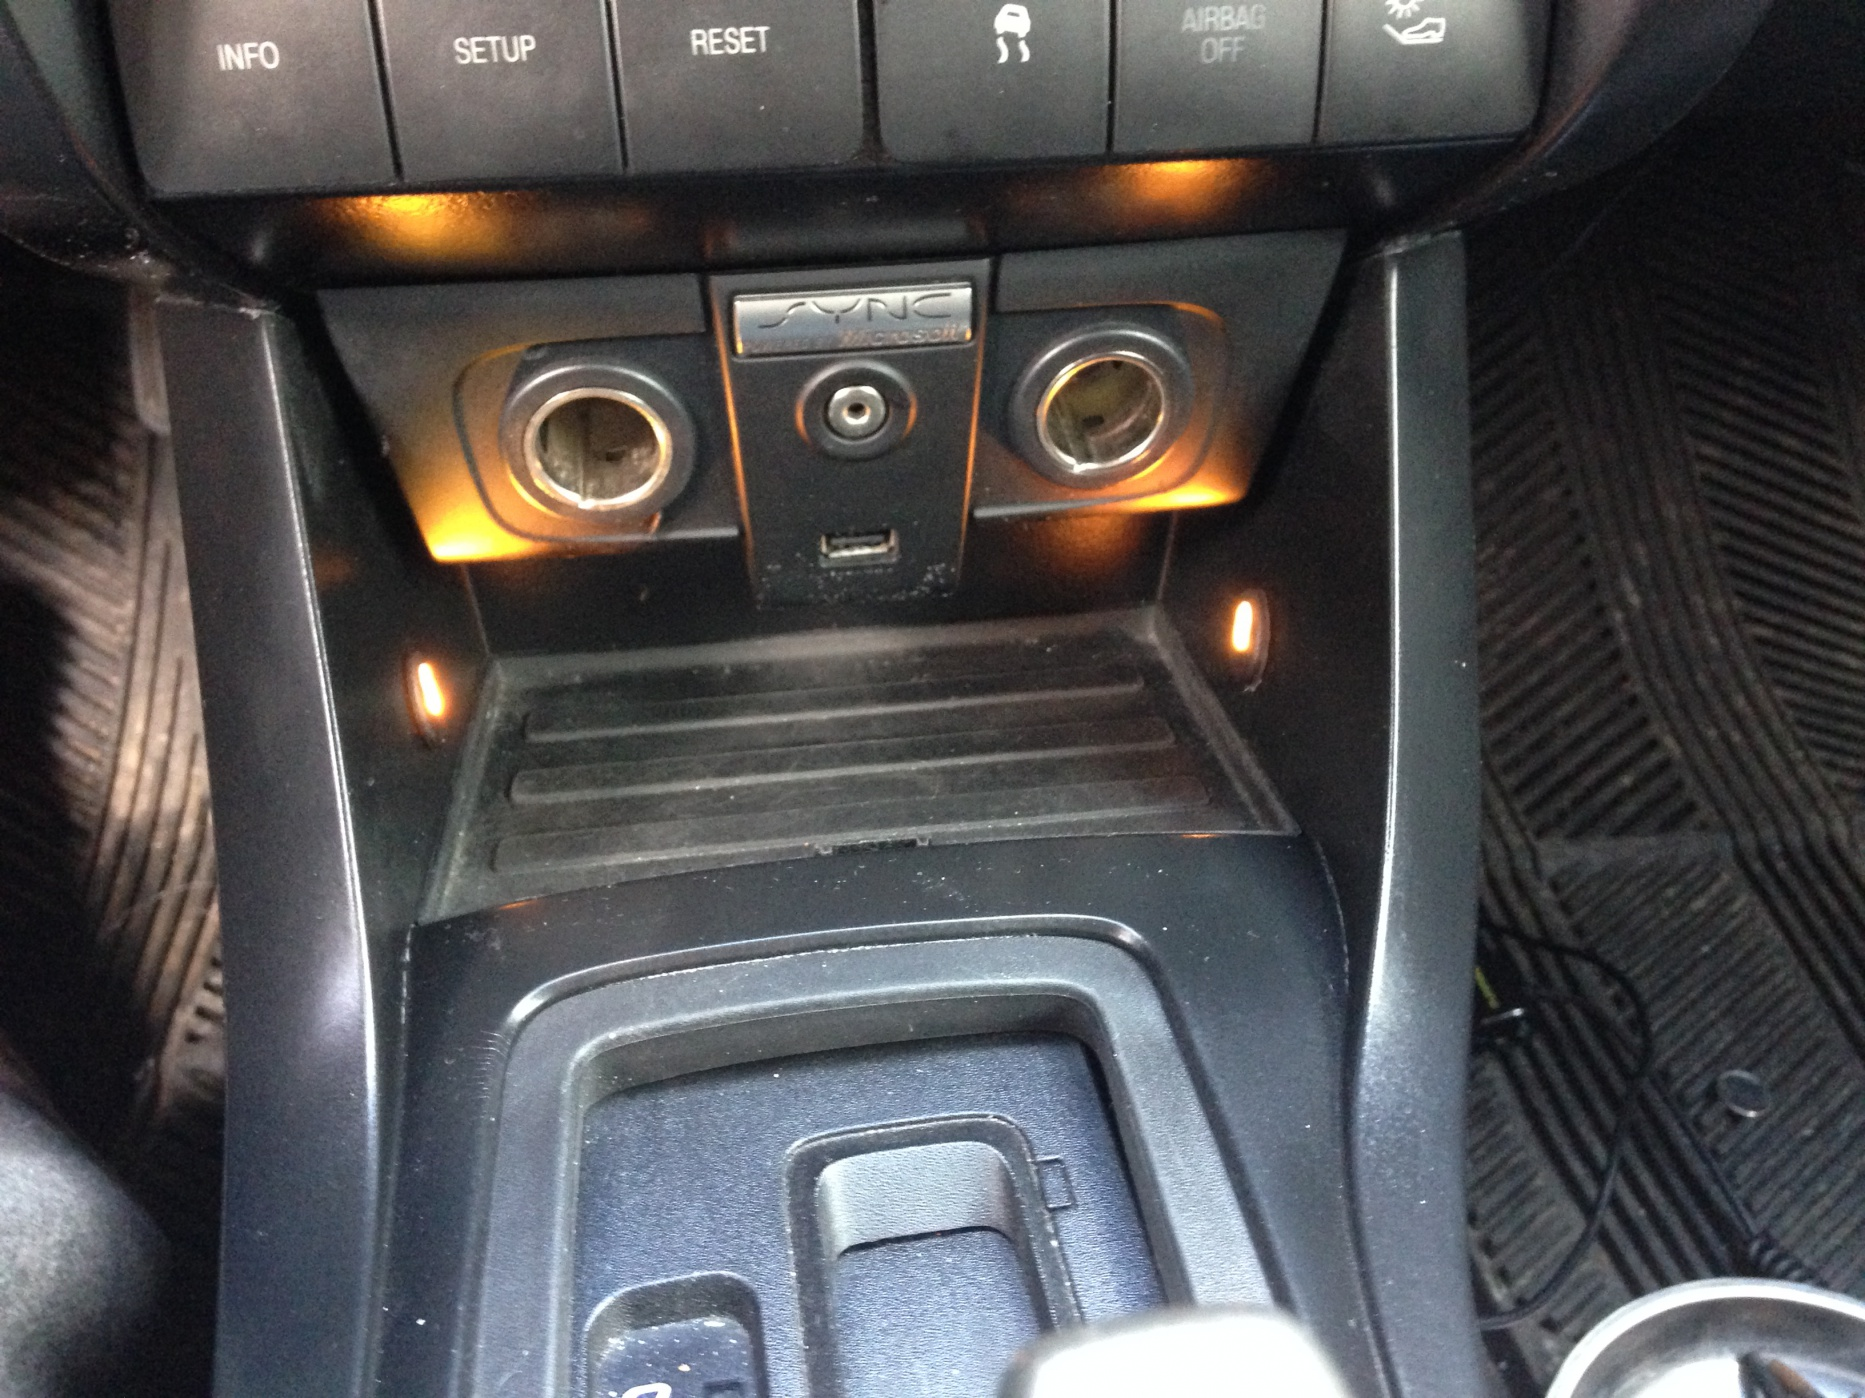 ambient lighting mod-001.jpg & ambient lighting mod - Ford Focus Forum Ford Focus ST Forum Ford ... azcodes.com